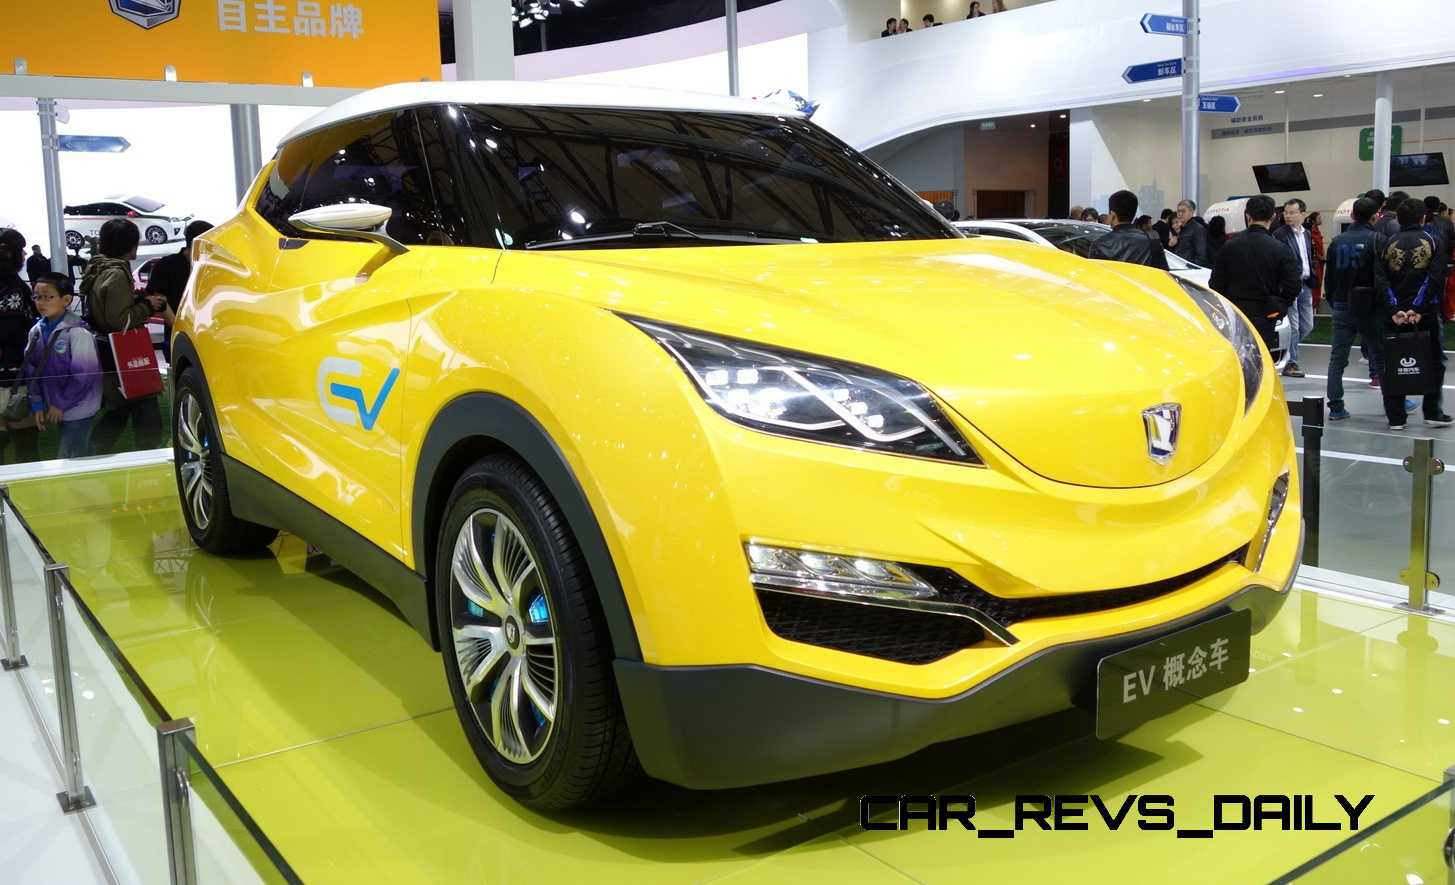 Chinese Market Suv And Crossover Concepts Acura Vs Mg Vs Chery Vs Haval Vs Changan together with Cadillac Srx Suv Base Dr Front Wheel Drive Interior moreover Lincoln Navigator L X Suv Rear Seat besides Lincoln Mkc Izmo Quarter Front in addition Lincoln Navigator Dr Std Wd Suv Pic X. on 2015 lincoln mkx suv